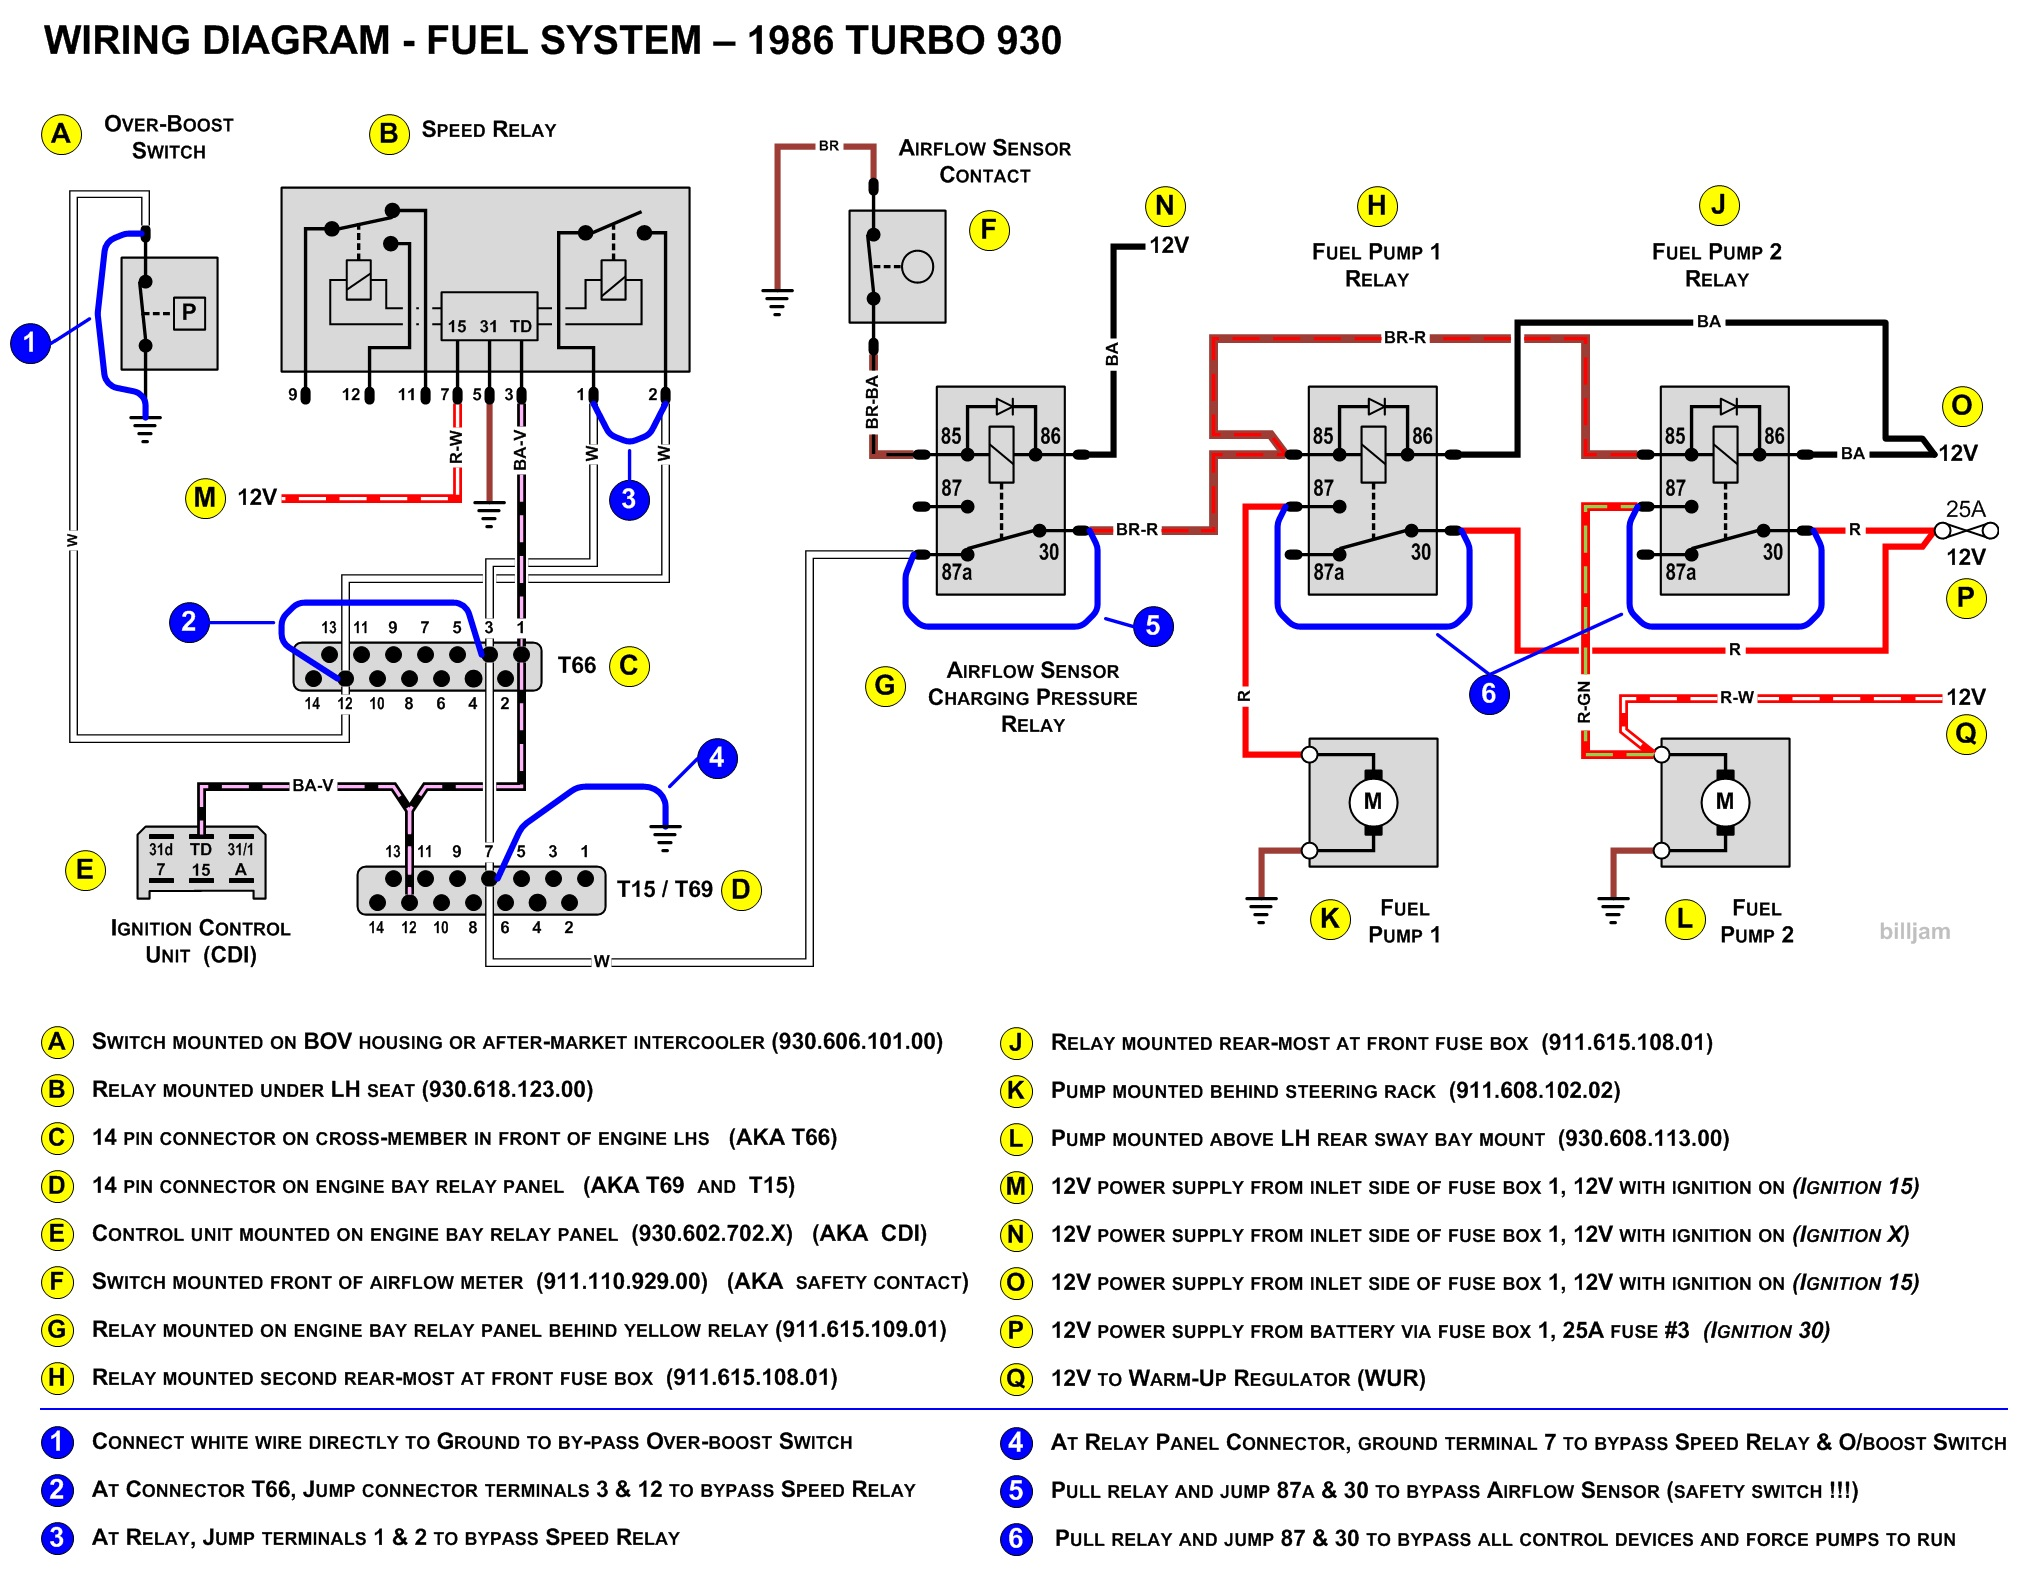 86 porsche 930 fuel system wiring diagram jumpers made a fuse box label for my 88 page 3 pelican parts technical bbs fuse box label at nearapp.co